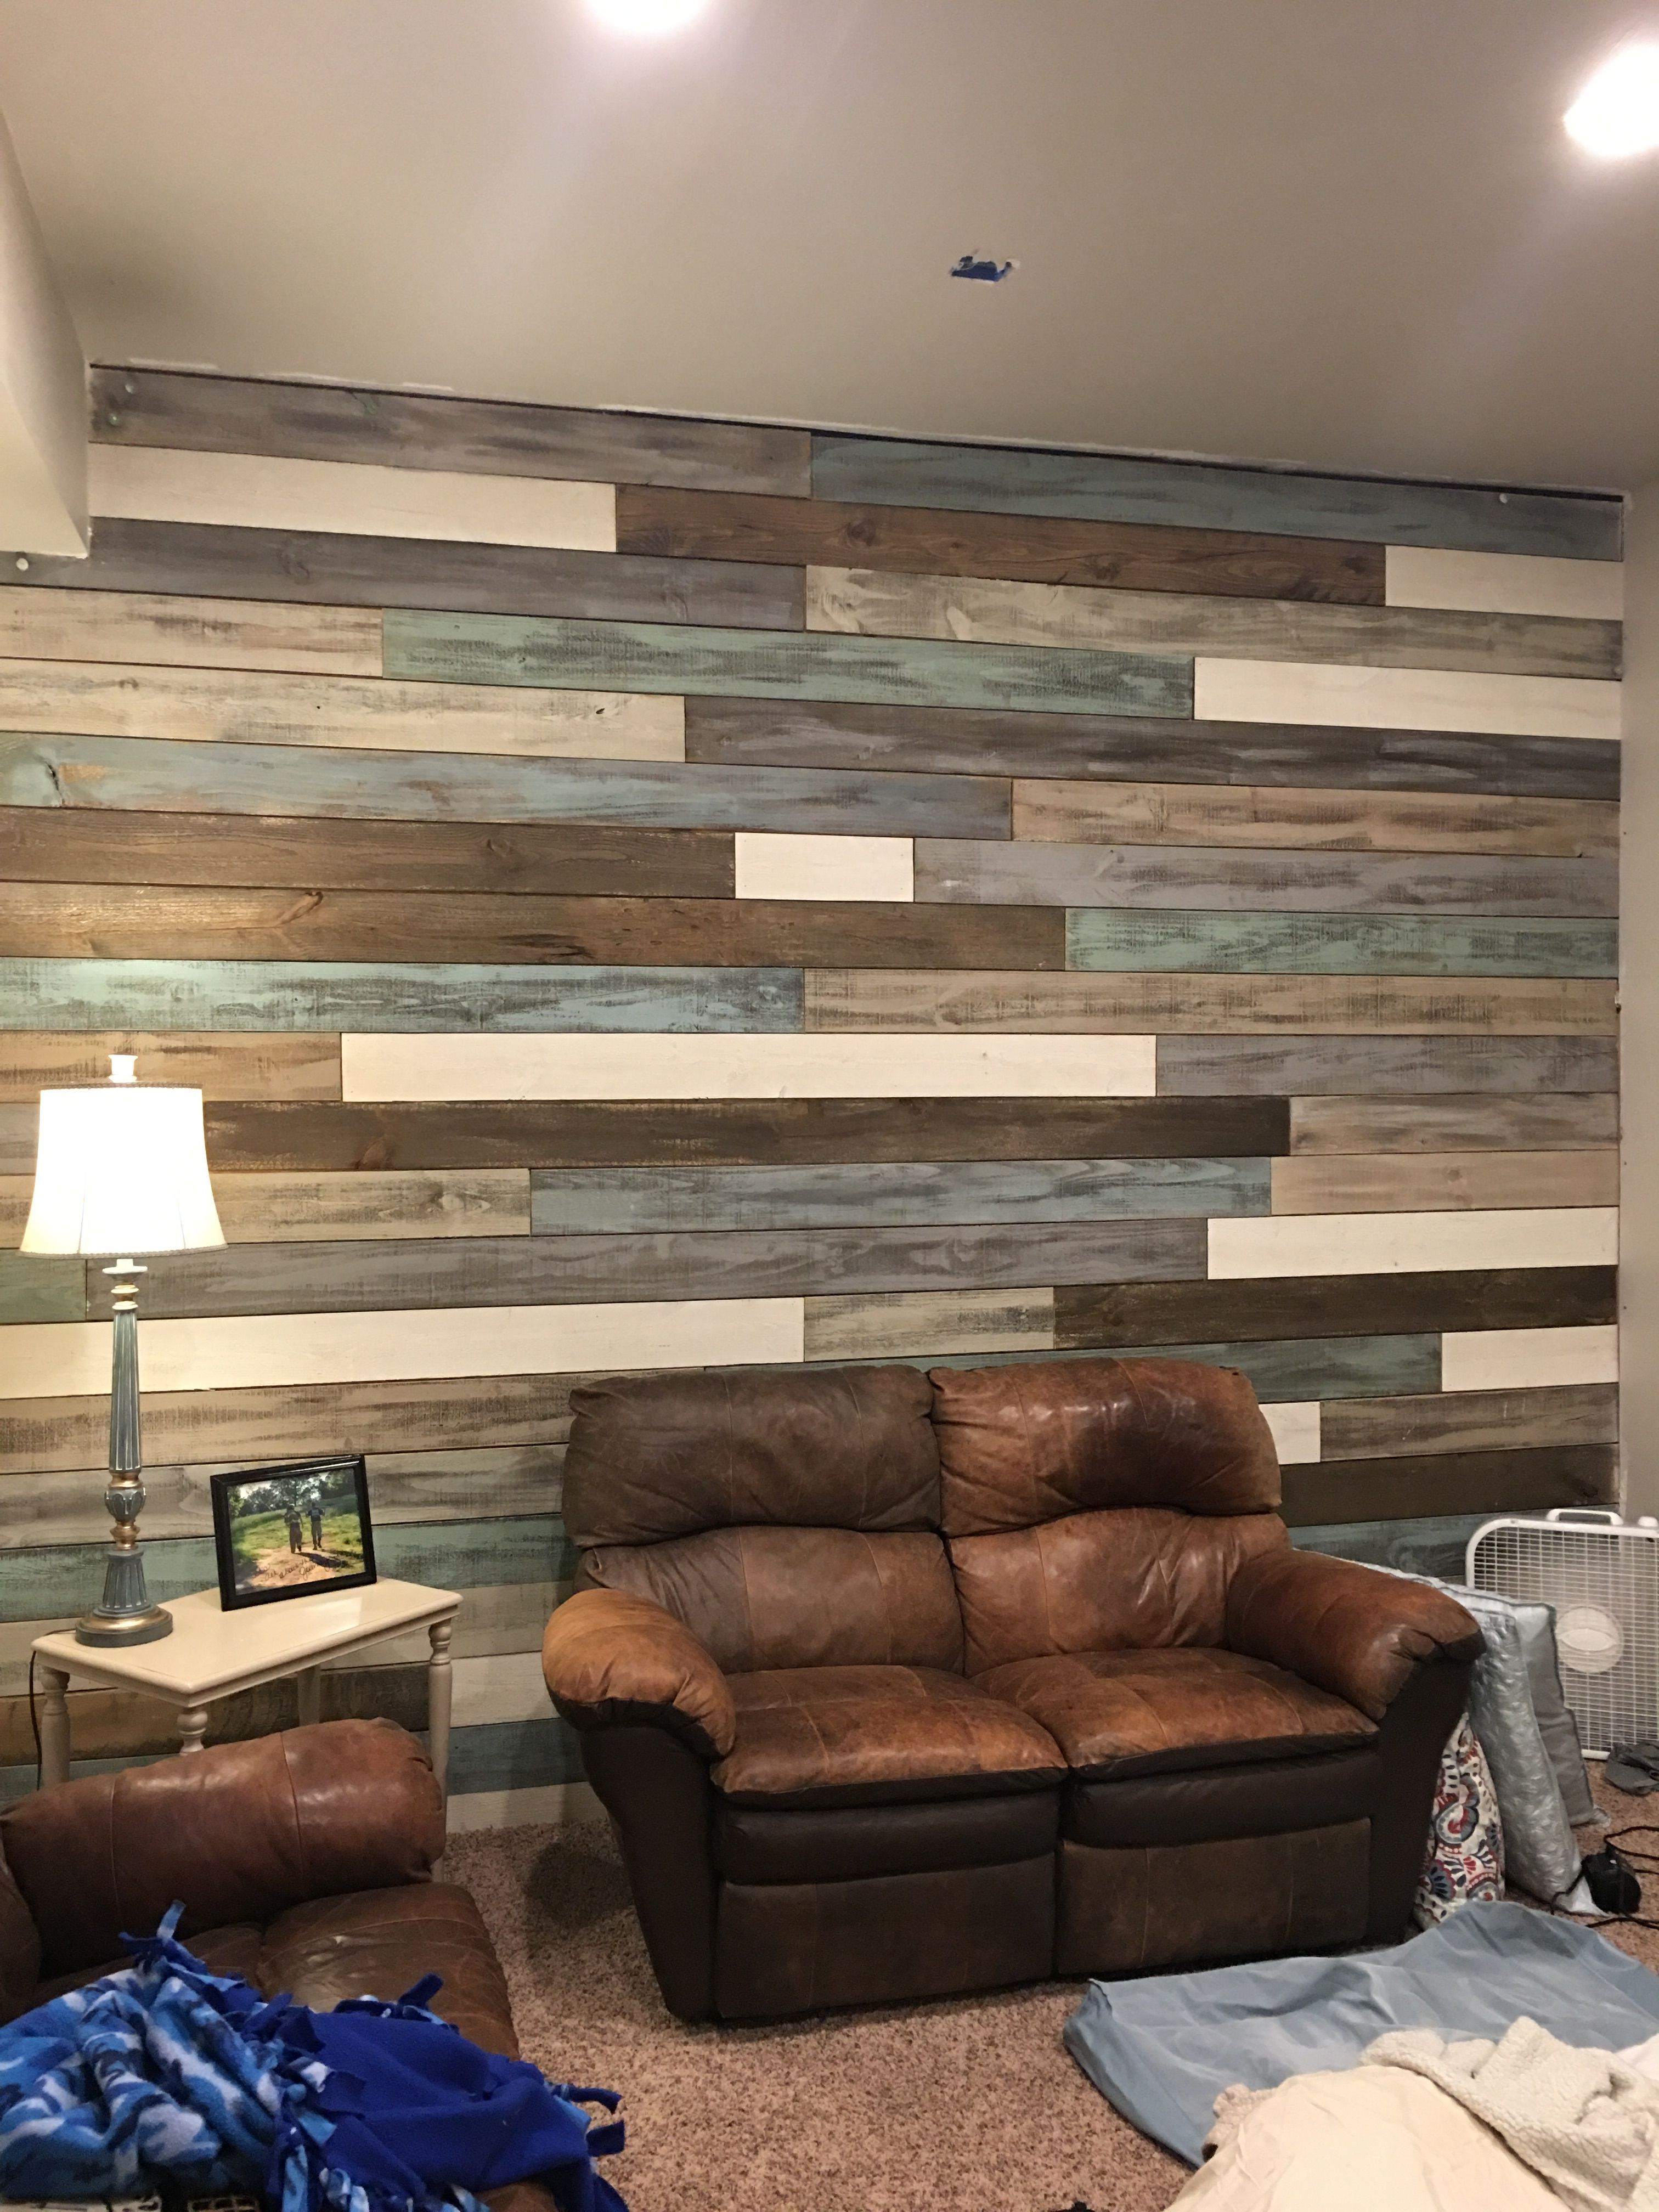 How About A Wood Wall Using Fence Boards And Rethunk